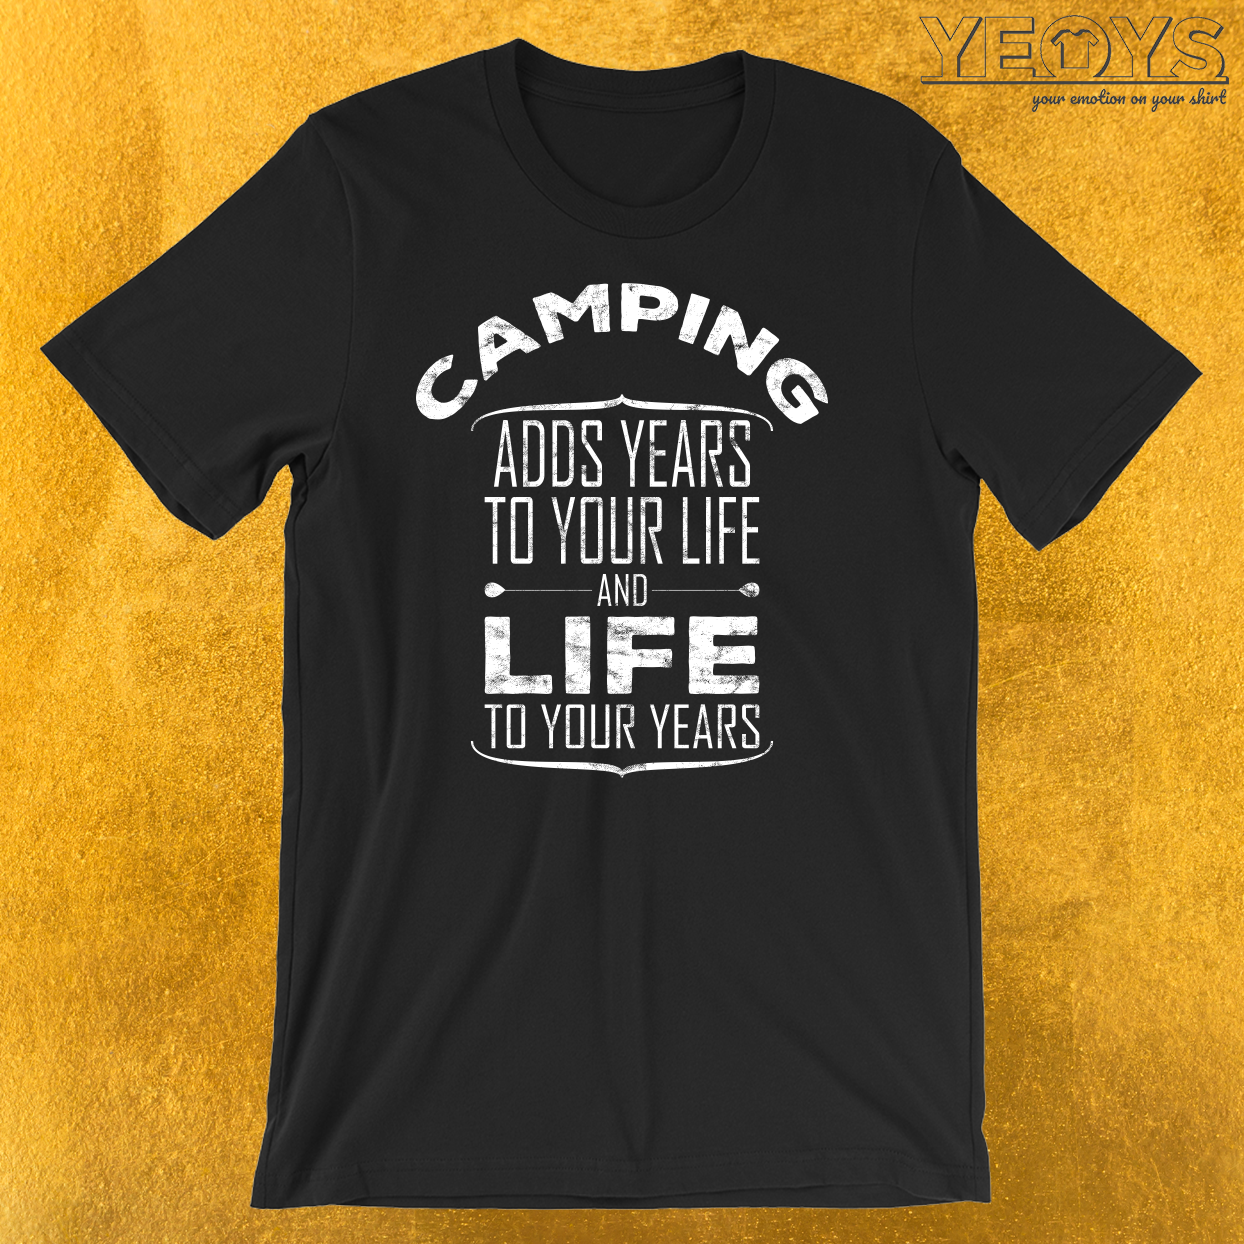 Camping Adds Life To Your Years T-Shirt